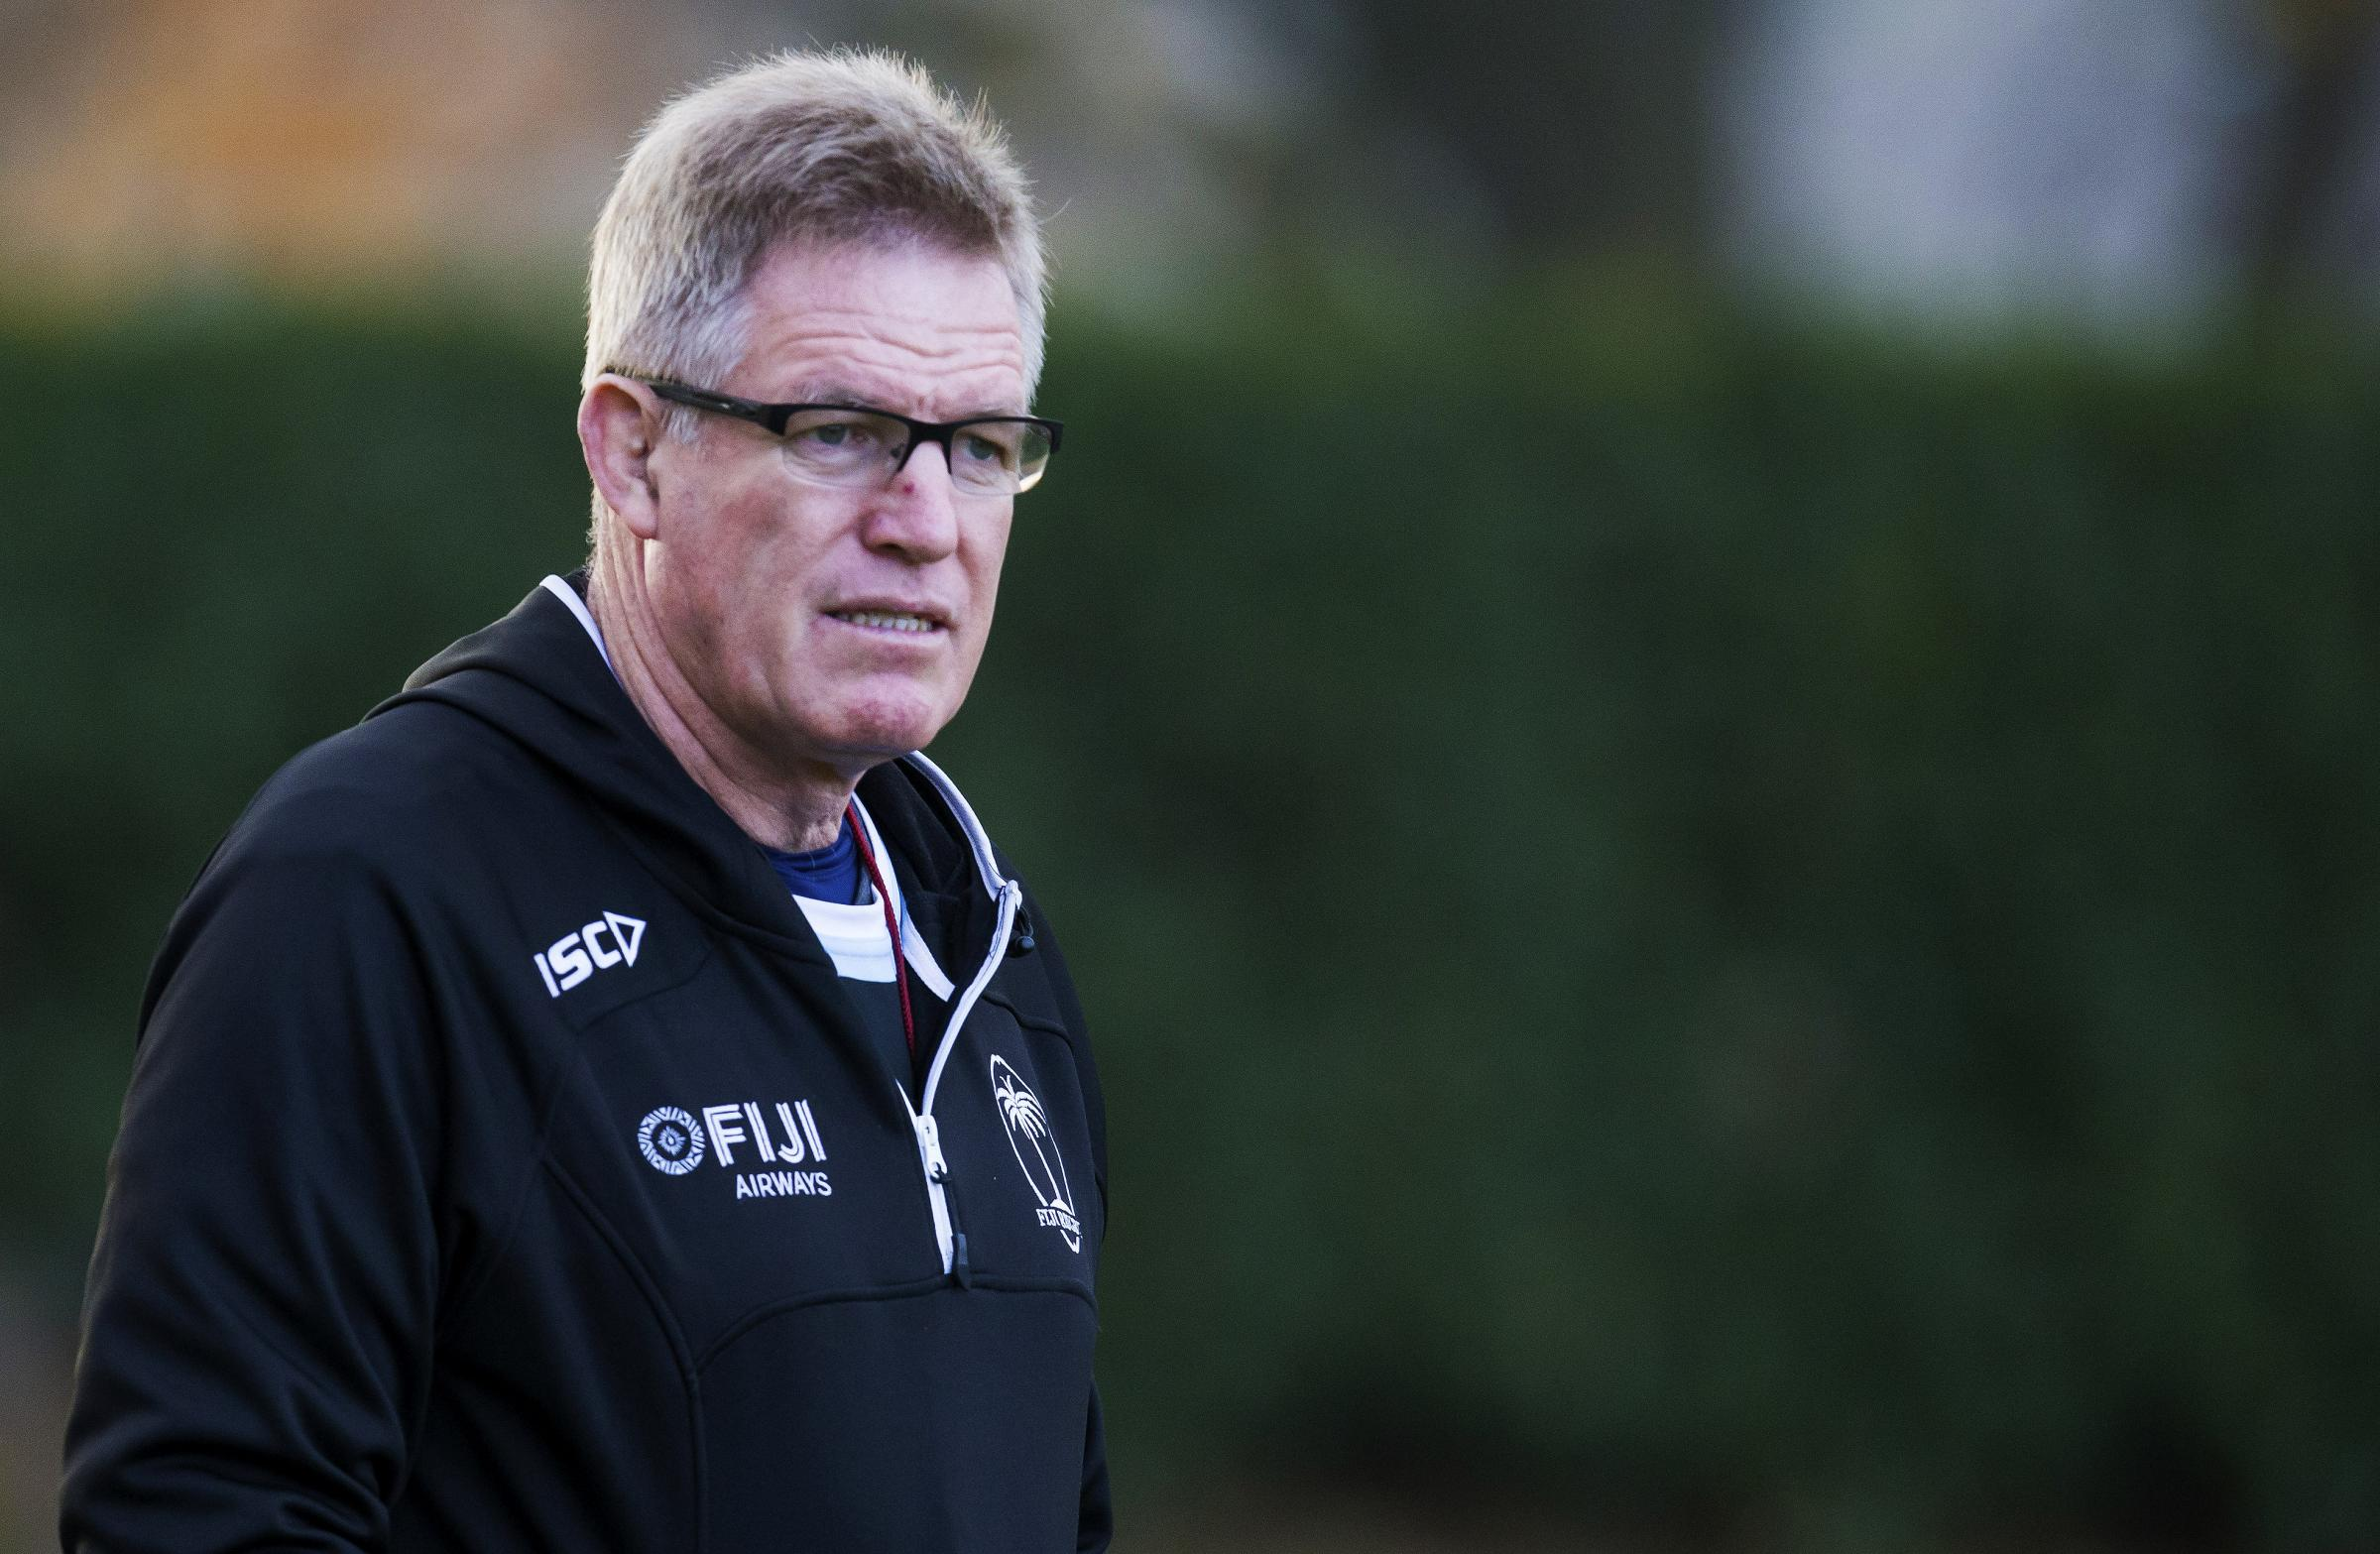 Coach John McKee says Fiji need to be at the top of their game when they face Scotland